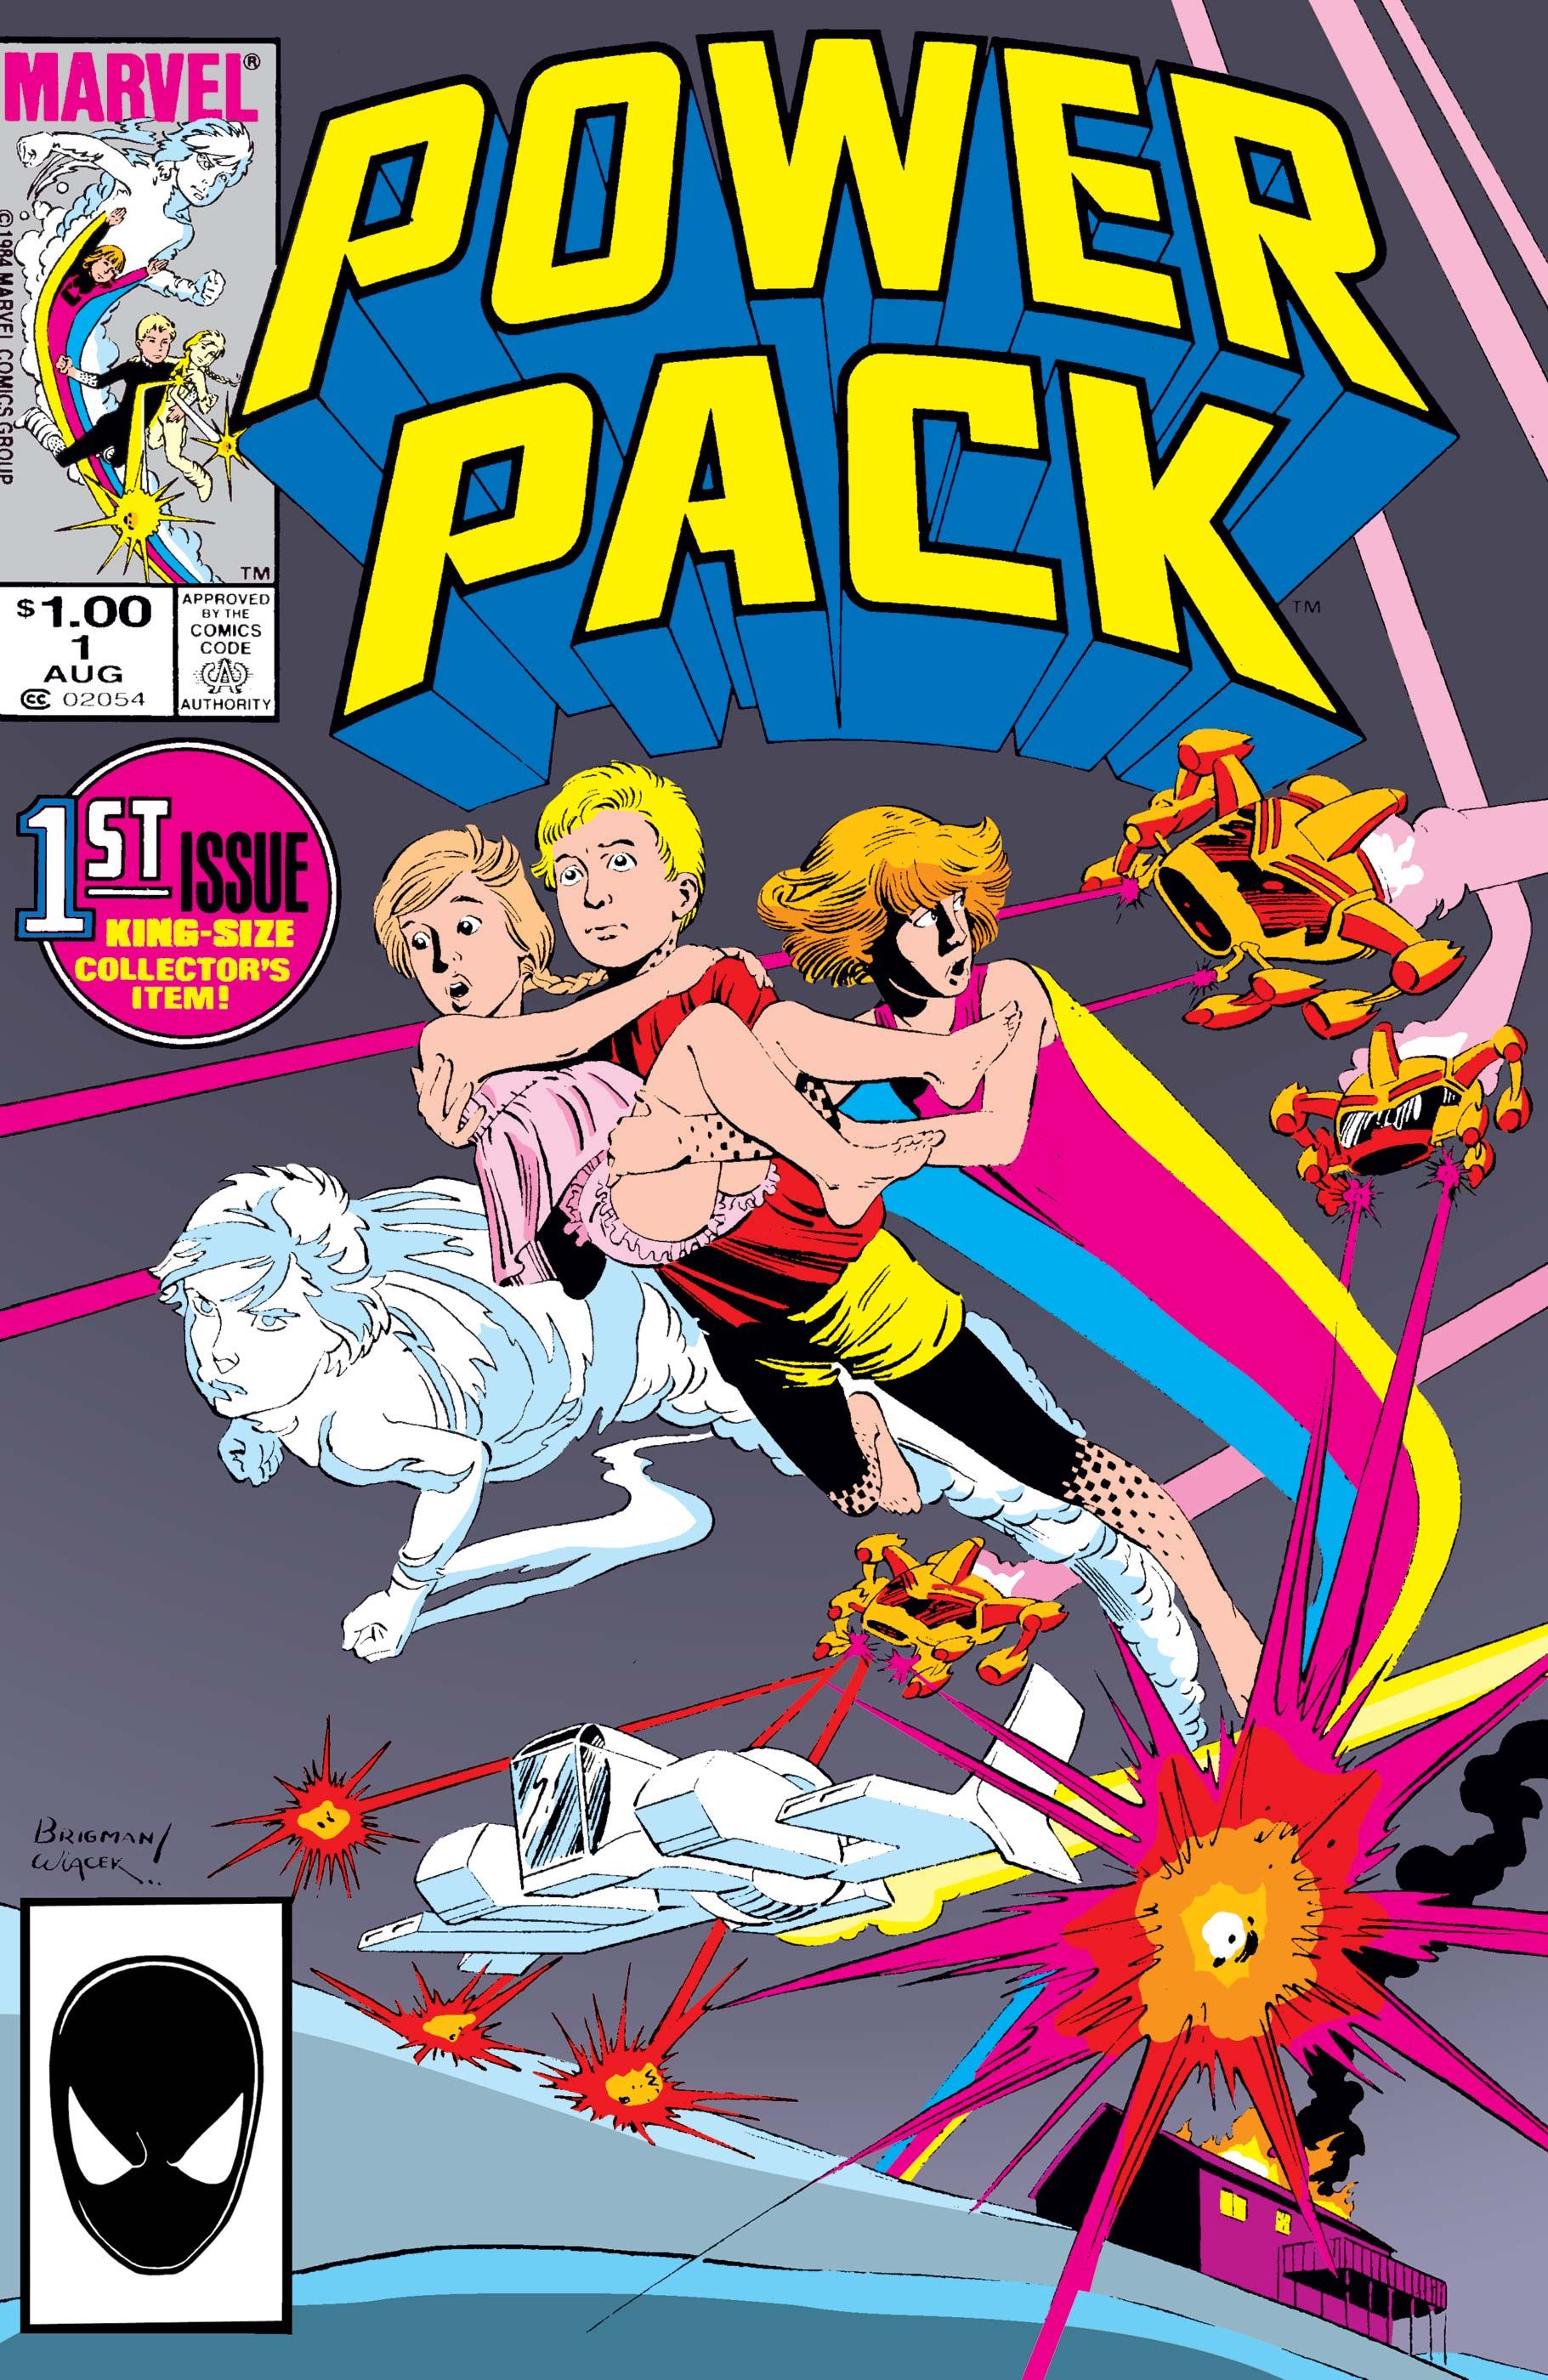 Image result for Powerpack simonson